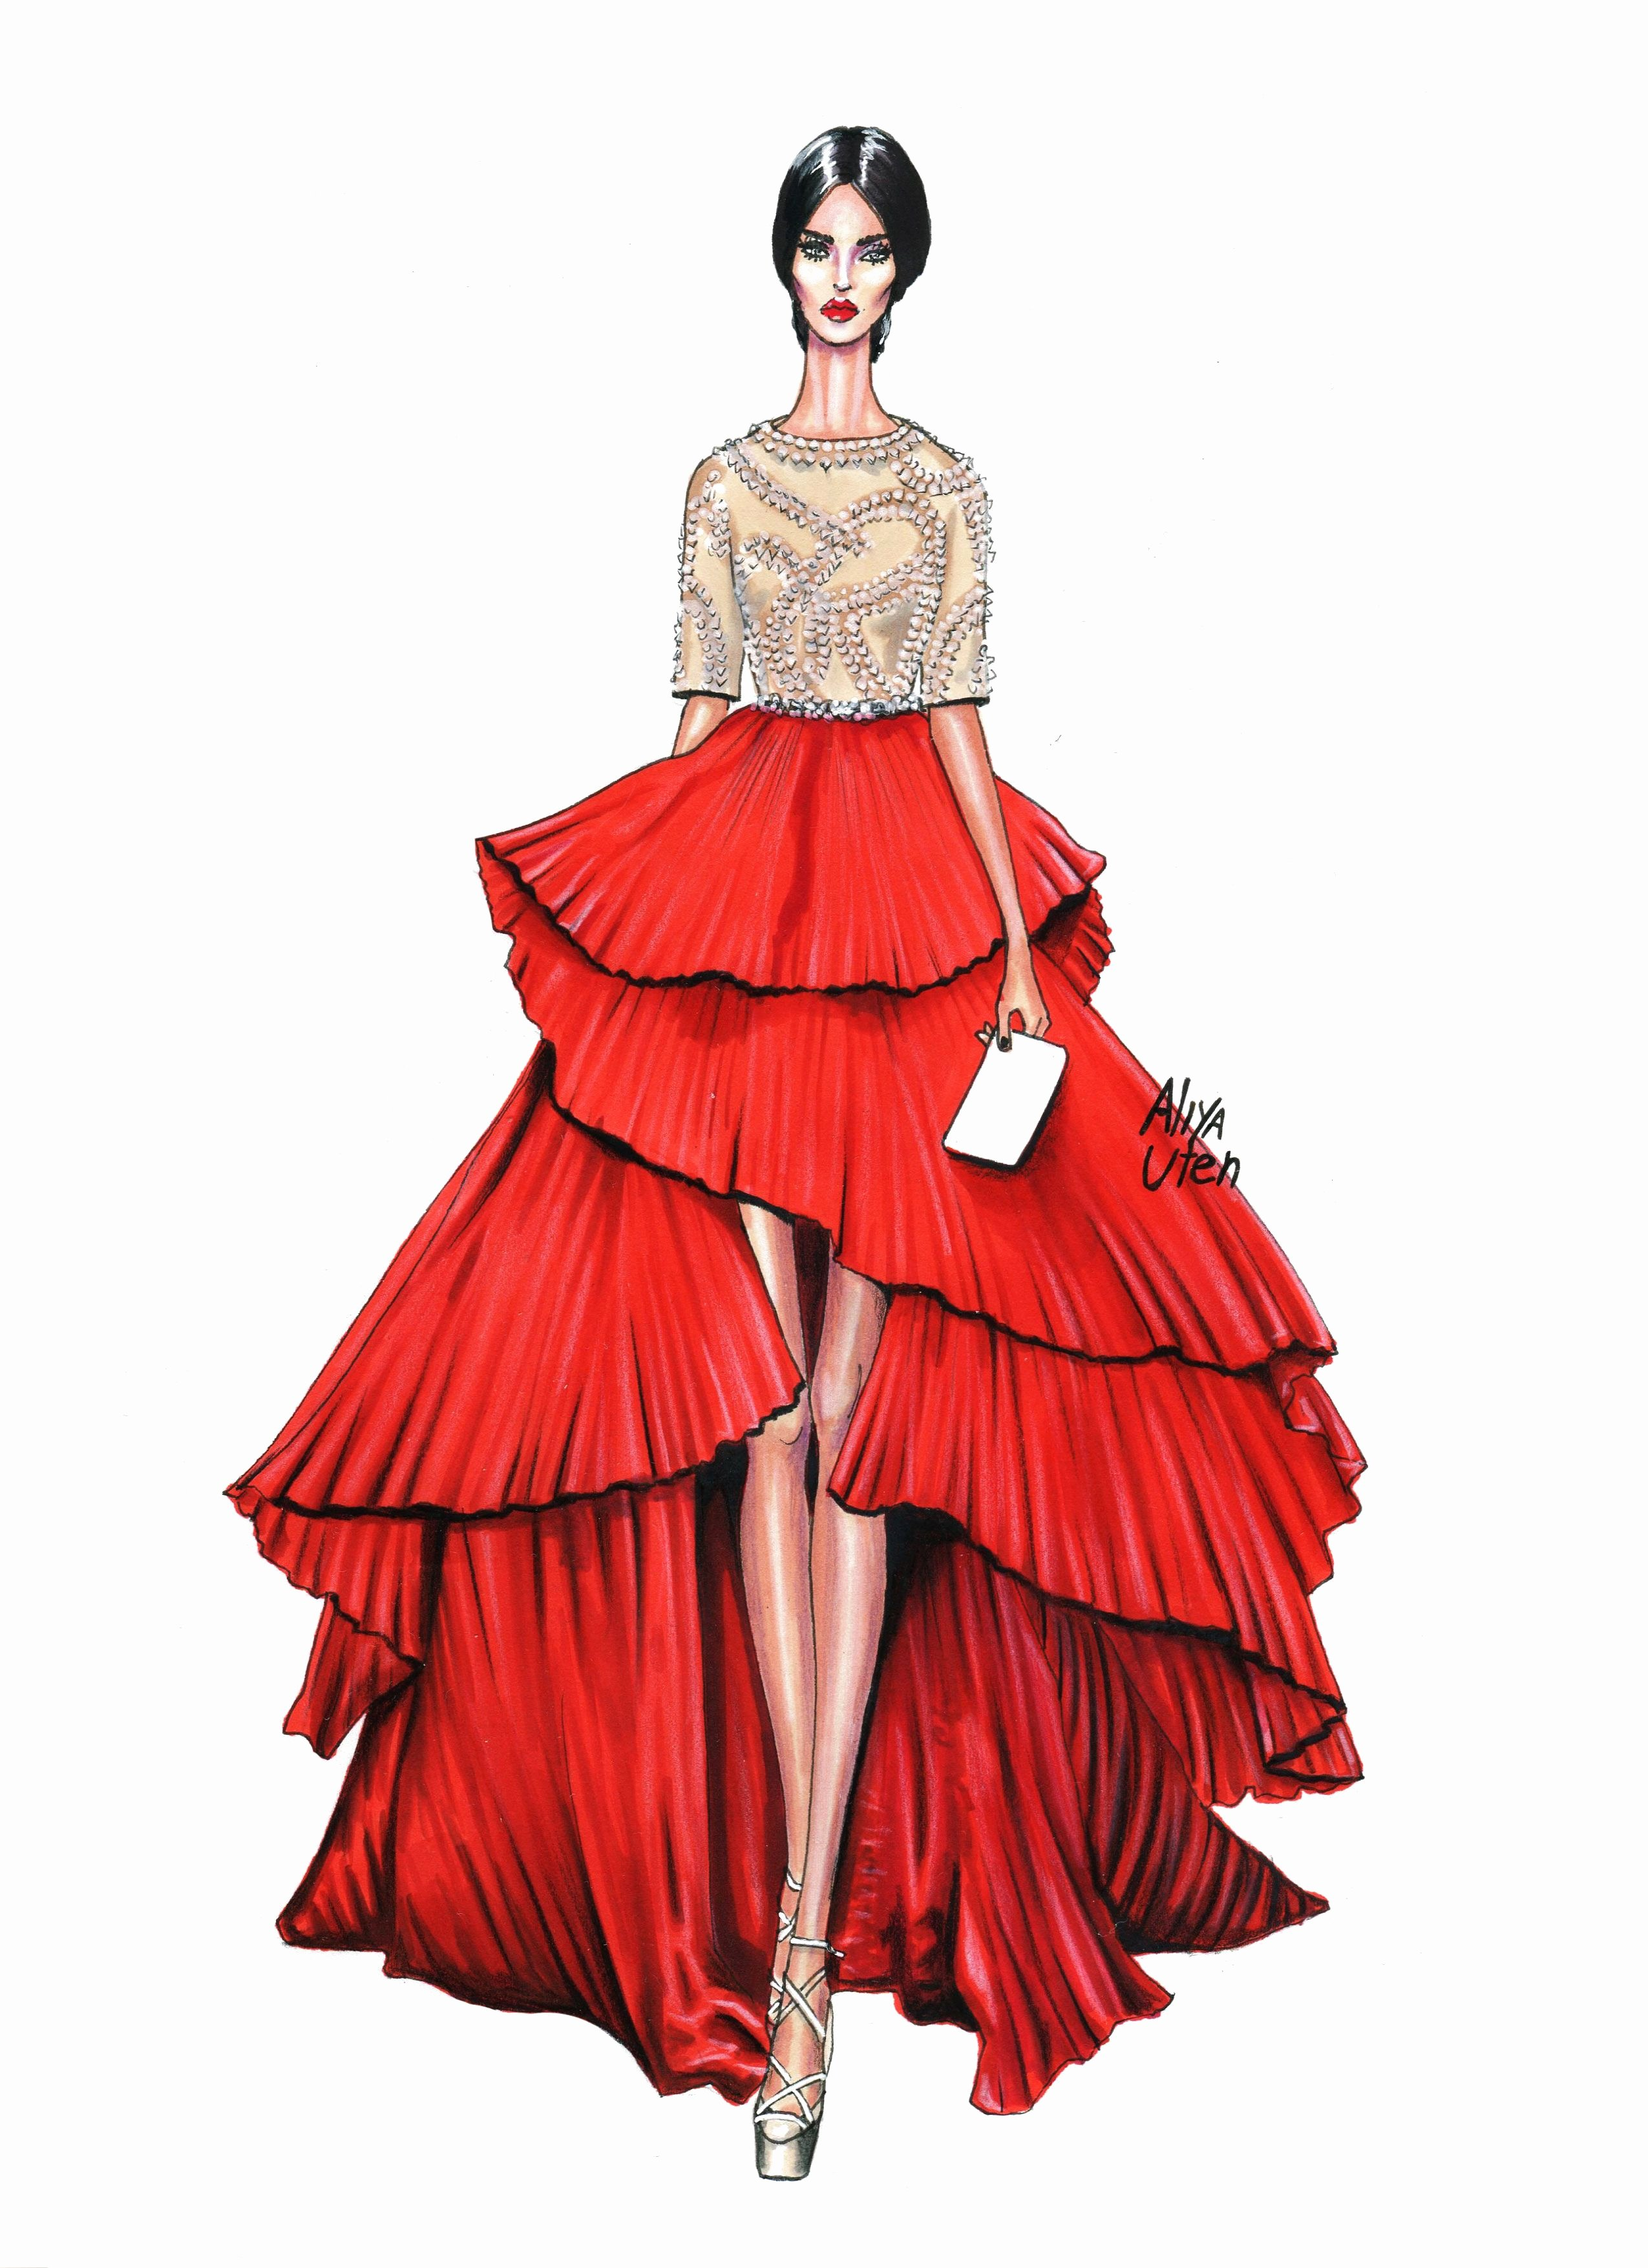 Dress Sketches for Fashion Designing Luxury Illustration ♦f&i♦ Illustration Fashion